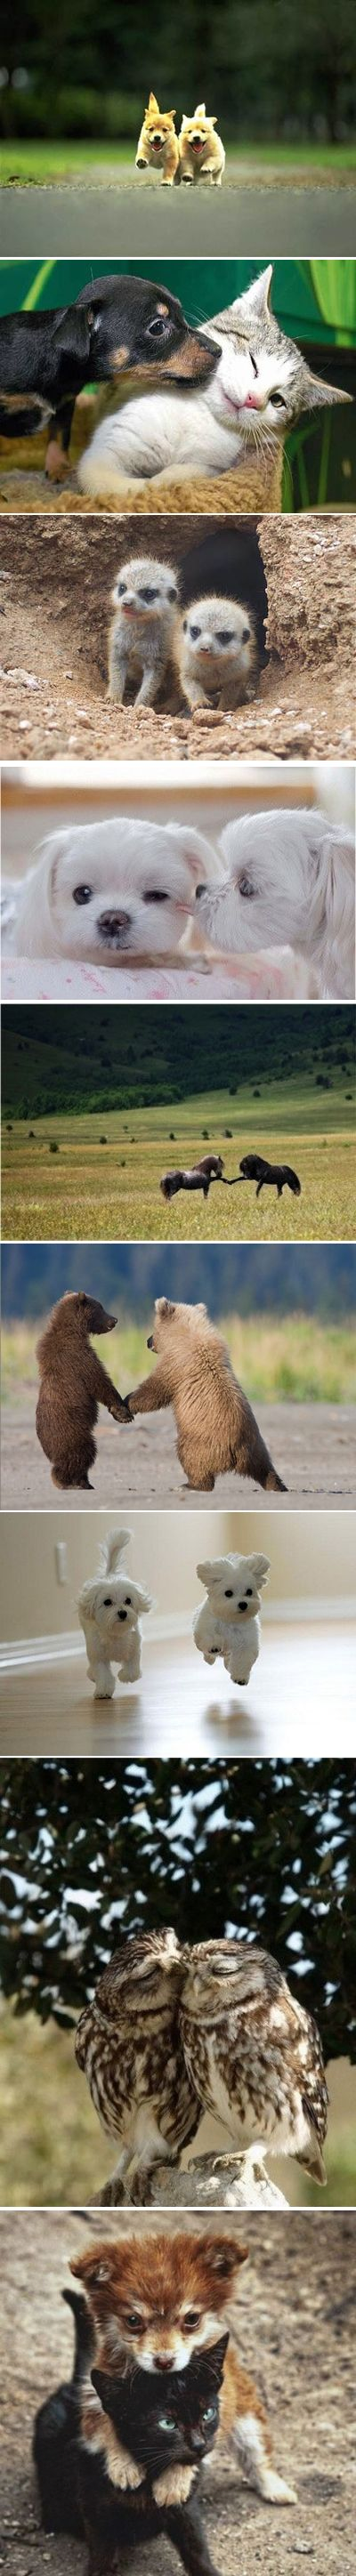 Funny pictures of the day -  Cute Baby Animals In Pairs (Compilation)